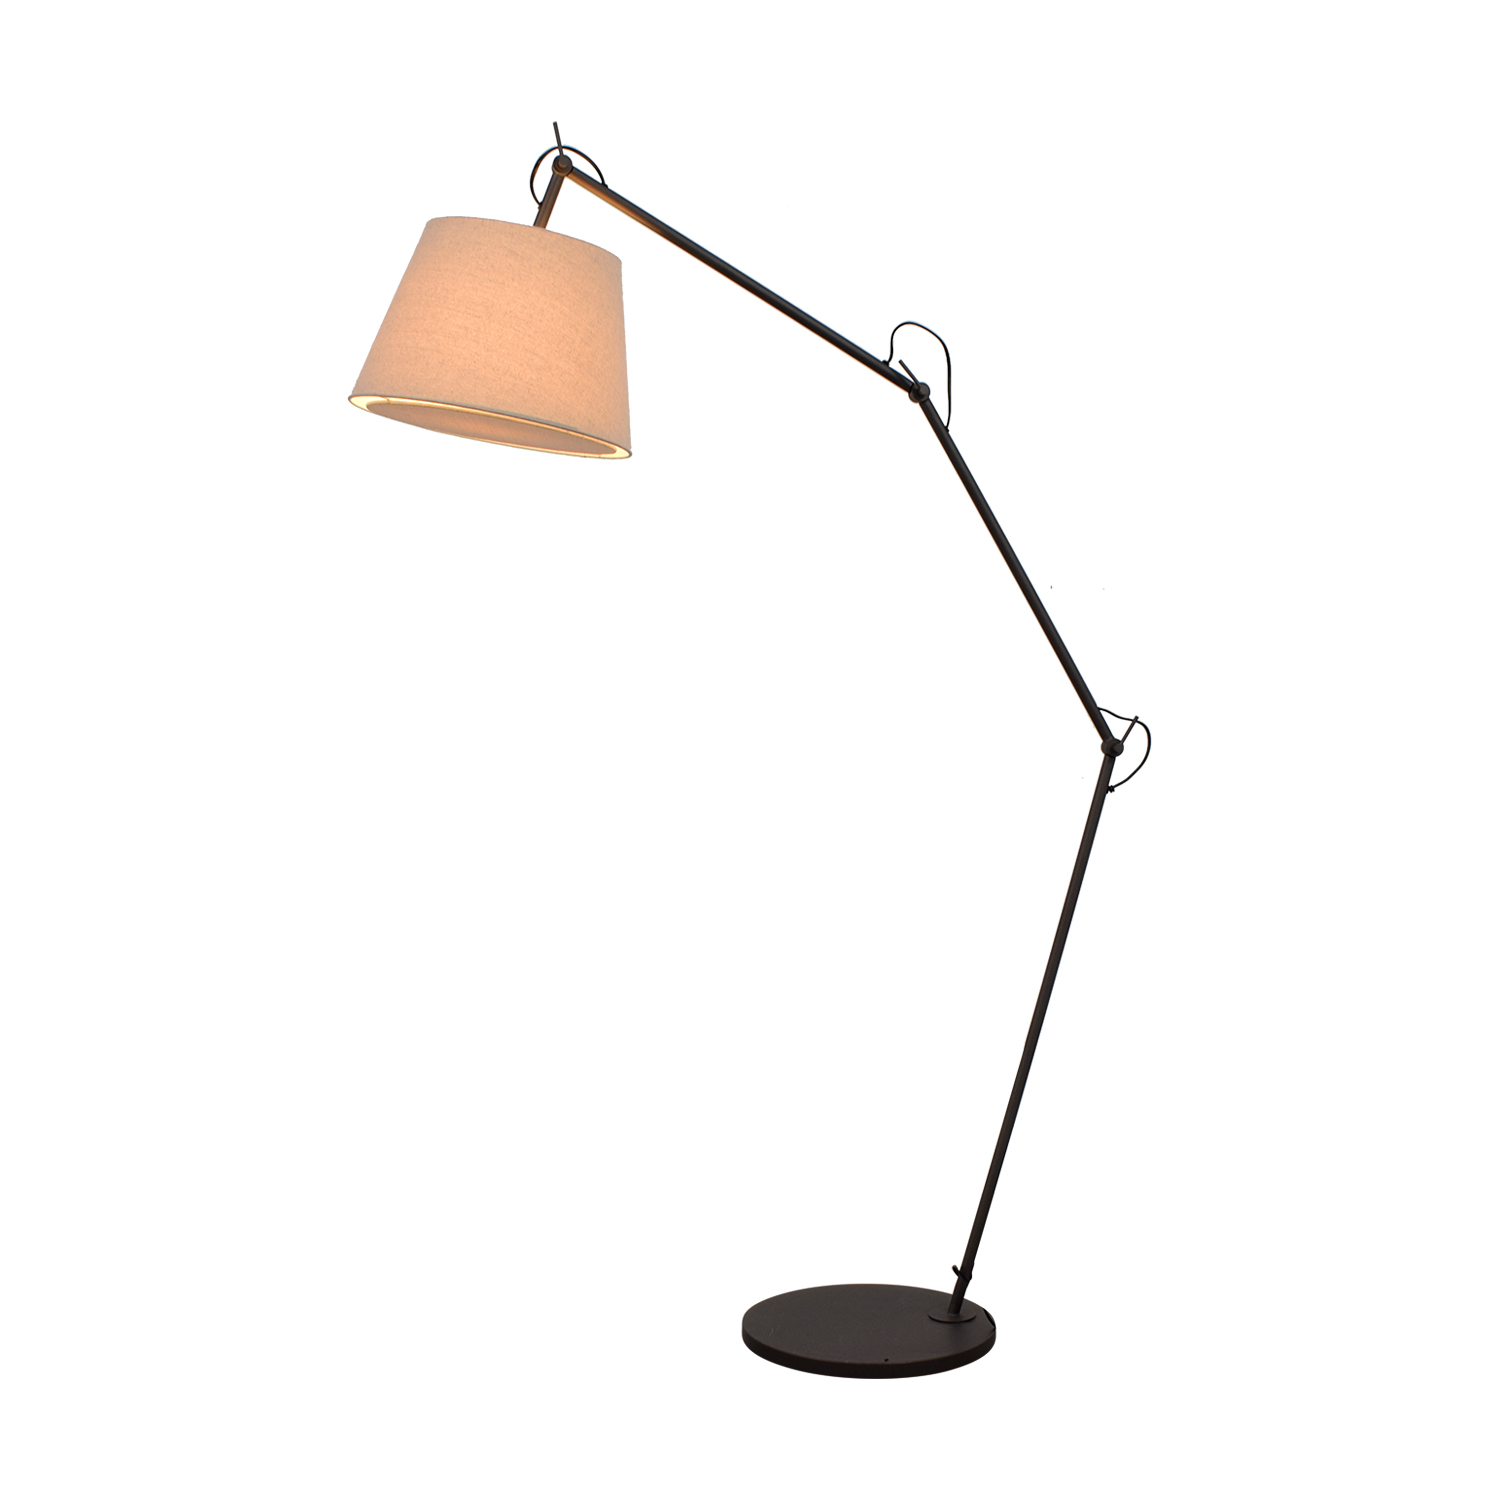 CB2 CB2 Joint Floor Lamp on sale